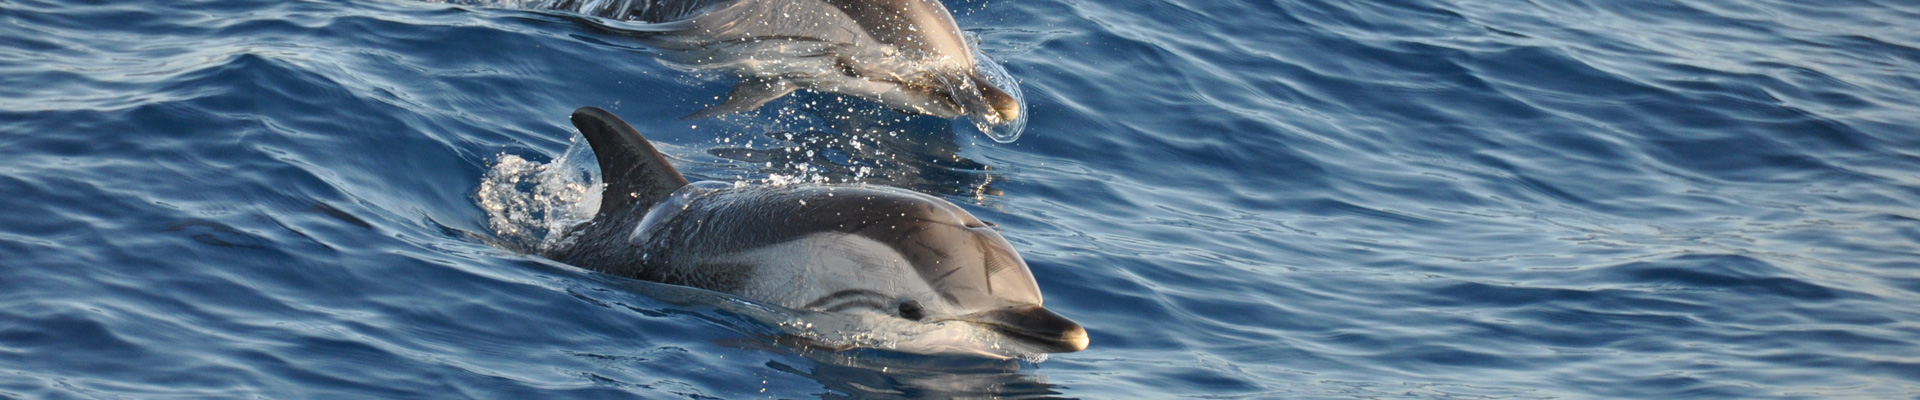 Swim with dolphins in the Mediterranean sea